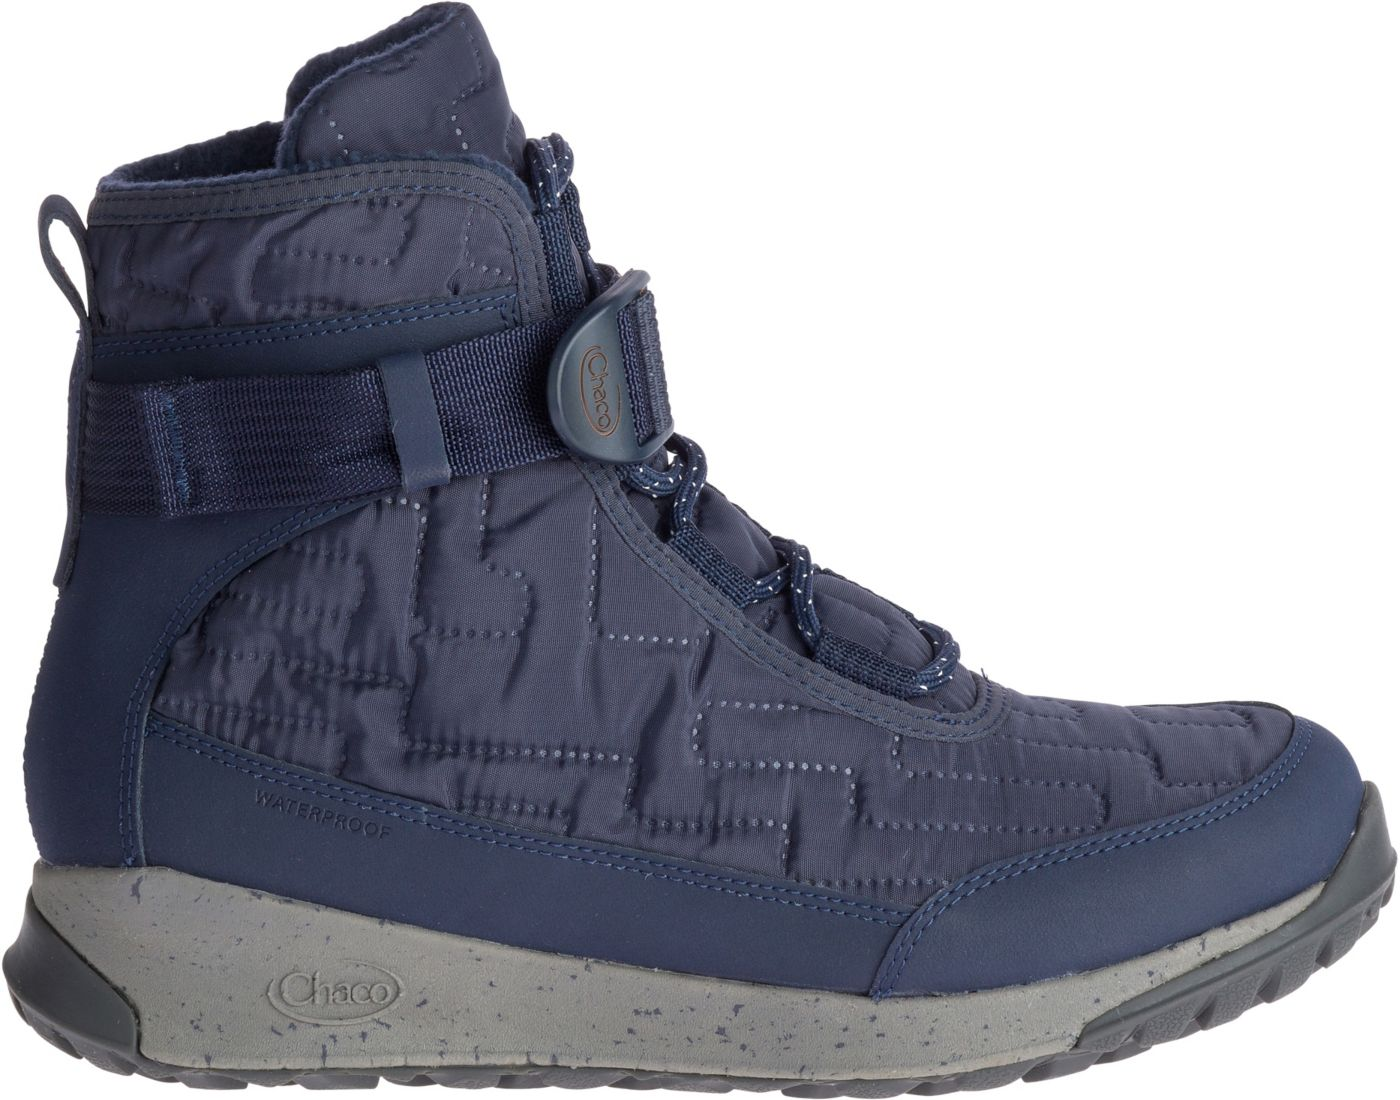 Chaco Women's Borealis Quilt Waterproof Boots